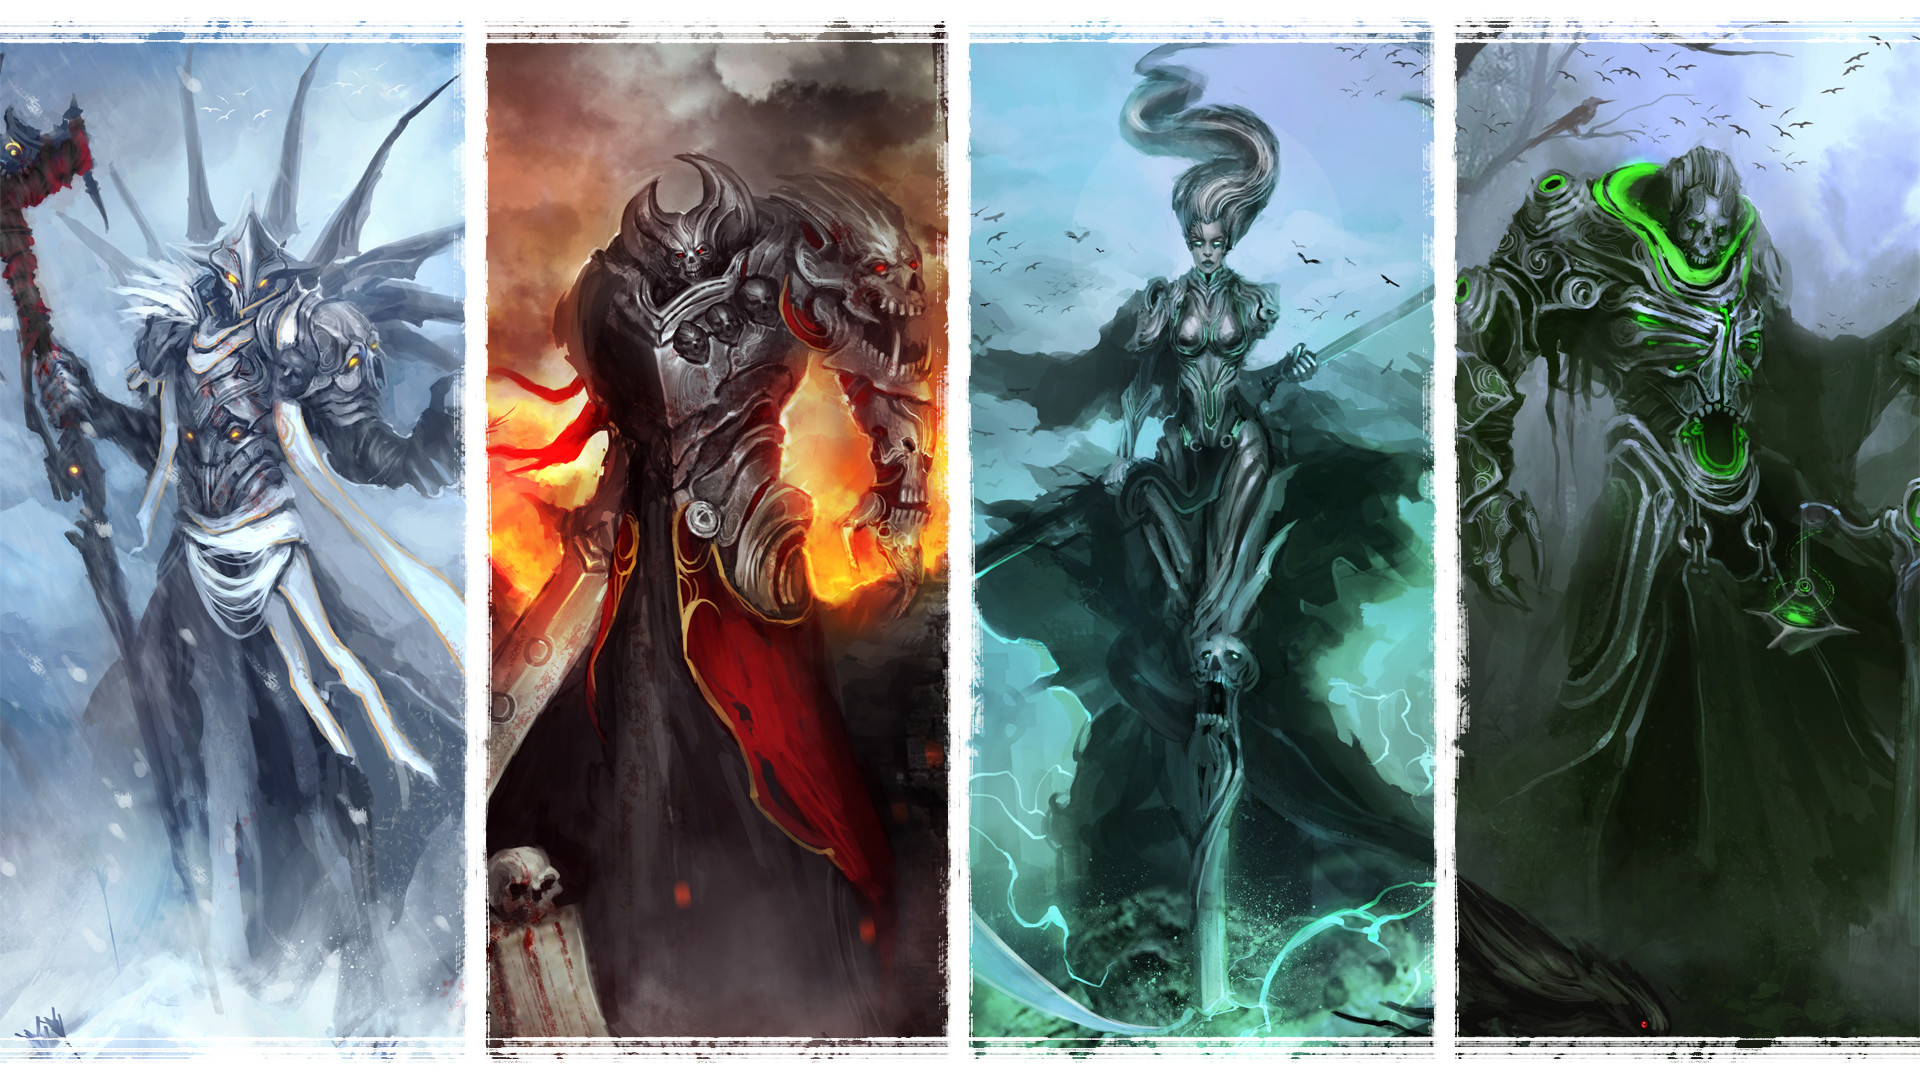 Four Horsemen Of The Apocalypse Hd Wallpaper Background Image